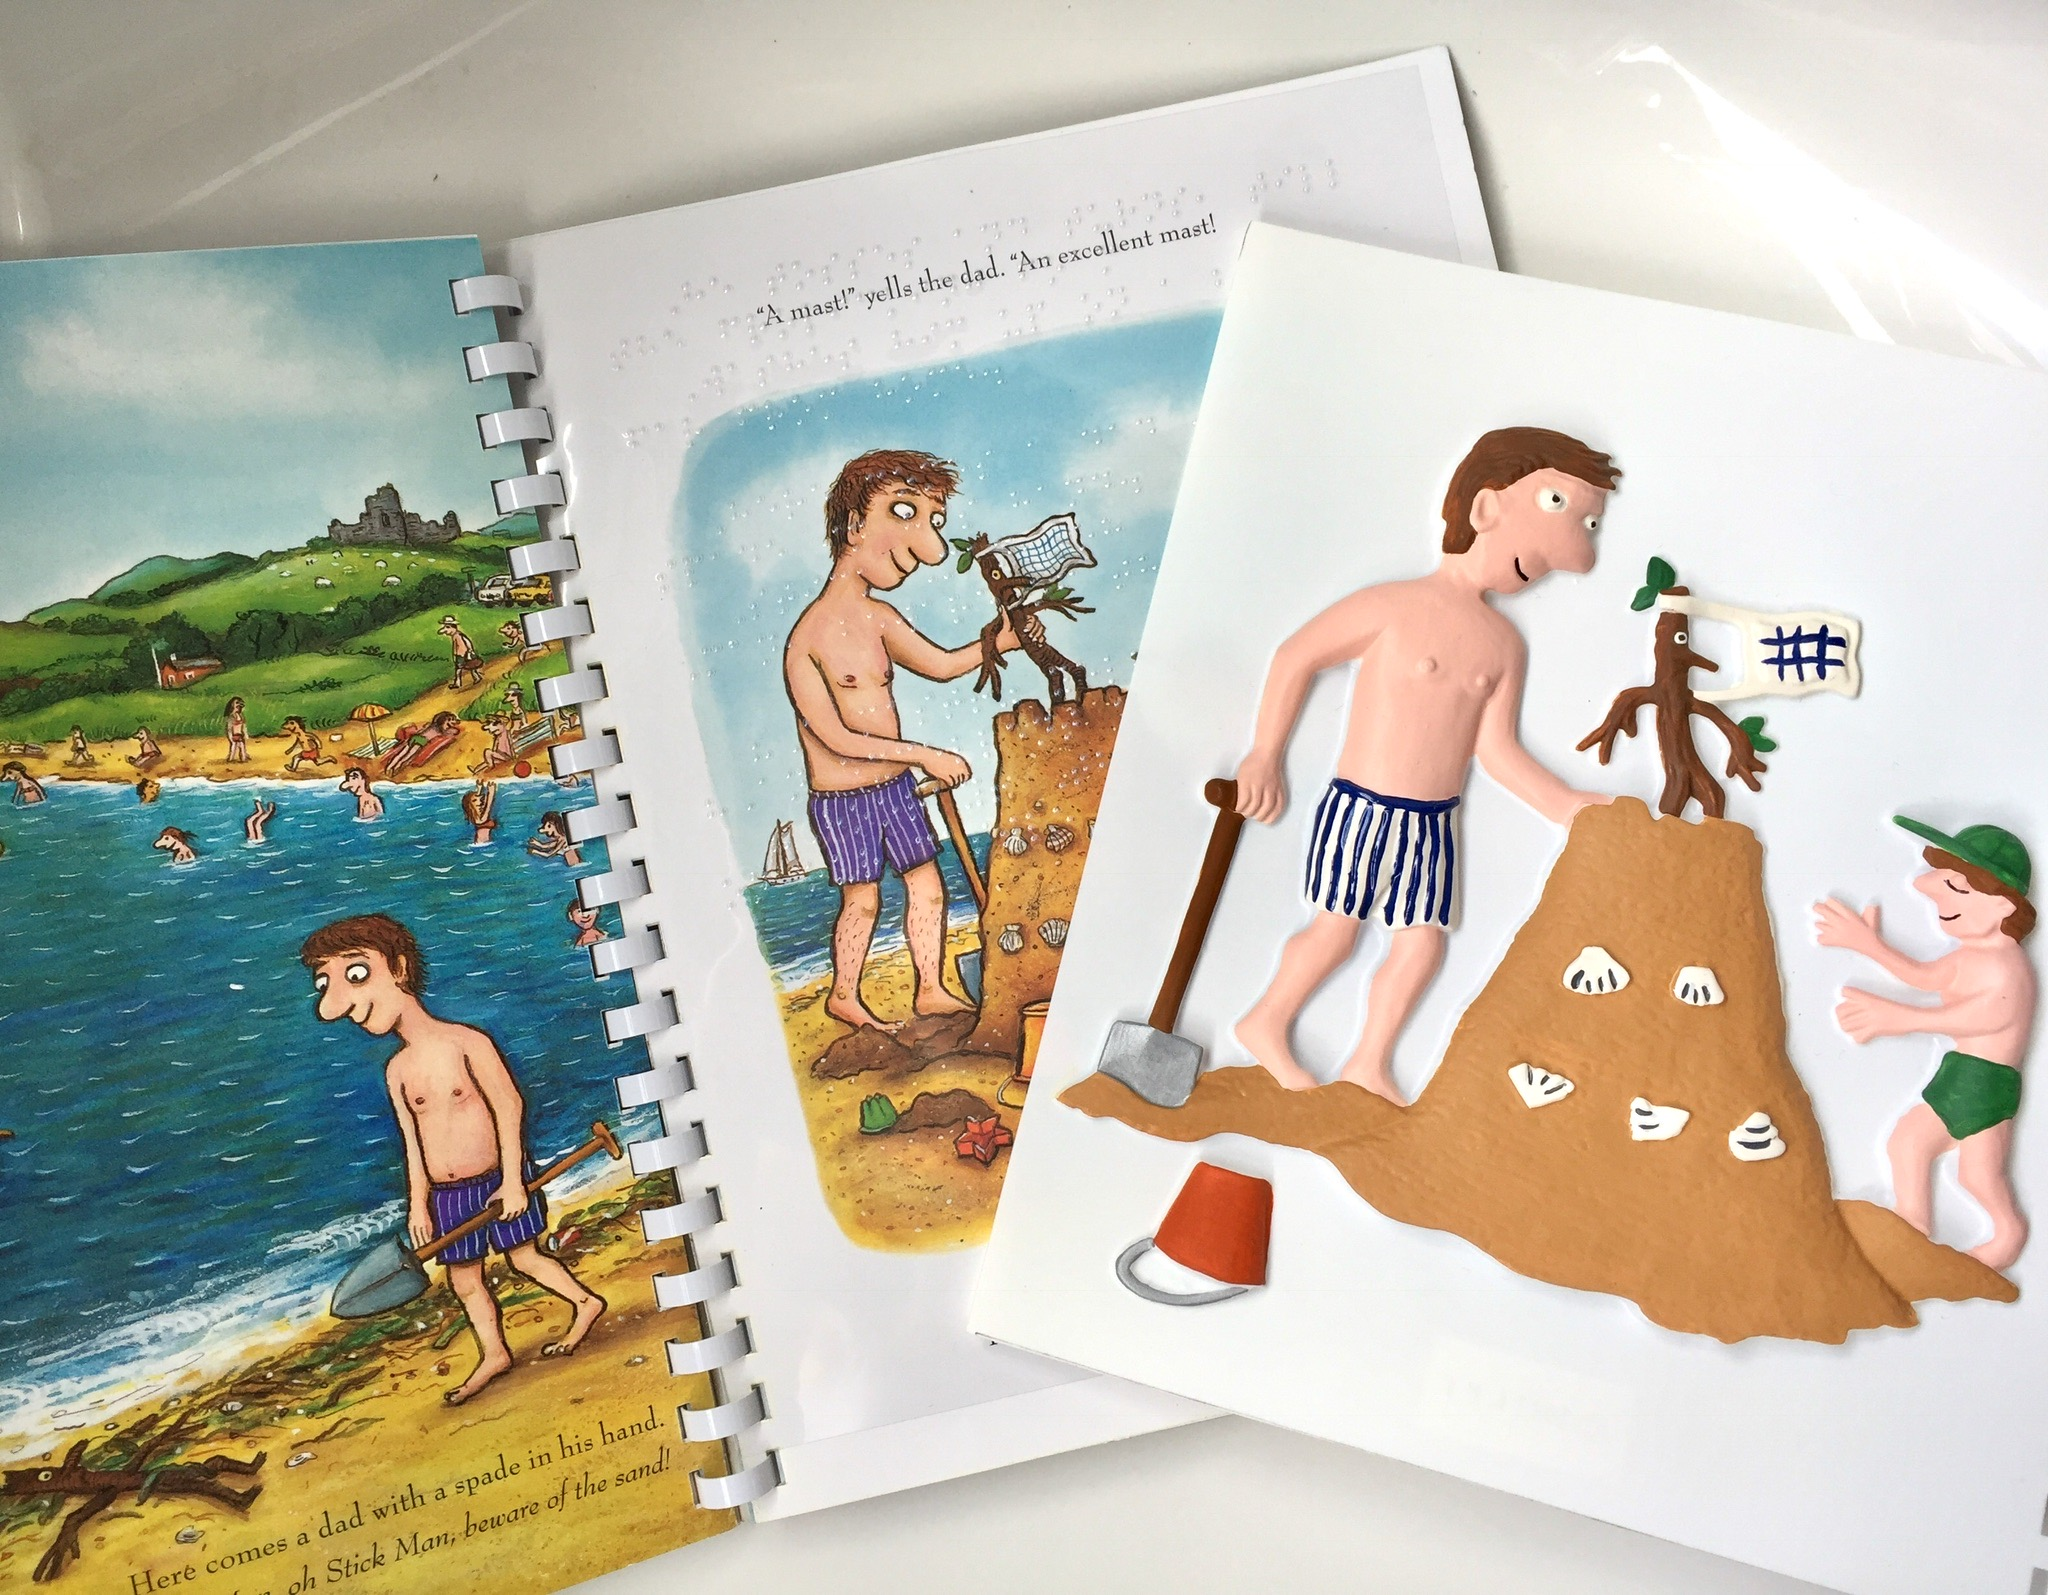 Stick Man book open on the beach pages with a tactile picture of the man and the sandcastle on top